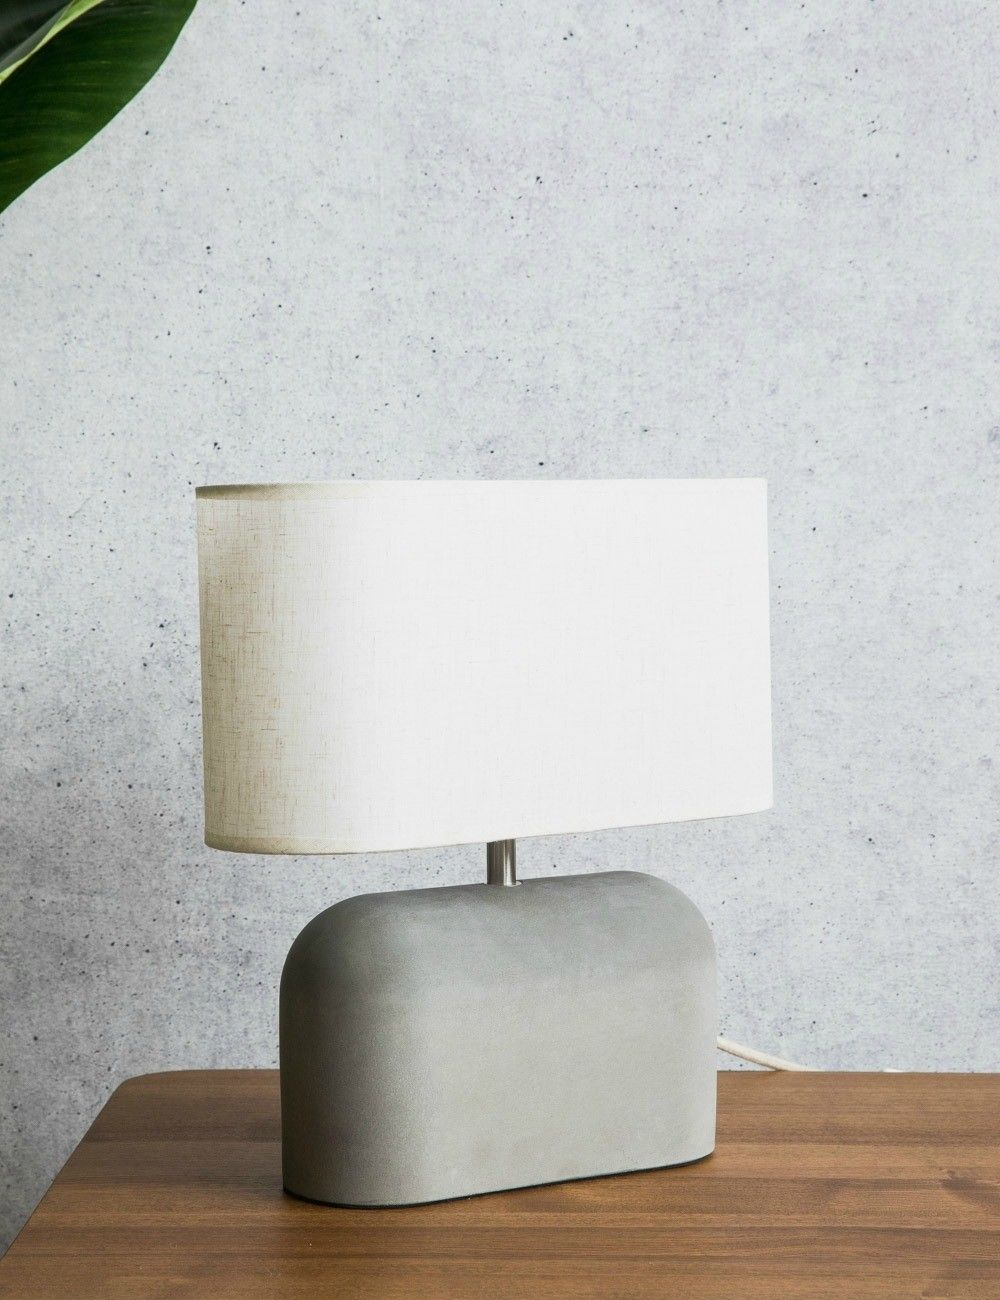 Small Concrete Table Lamp is part of Home Accessories Decor Lamps - Overall Height 37cm Shade H 18cm x W 33cm x D 13cm Base H 25cm x D 10cm Cable Length 180cm Requires a 1 x E27 bulb, Max wattage Eco Halogen 42  55W or LED 10W